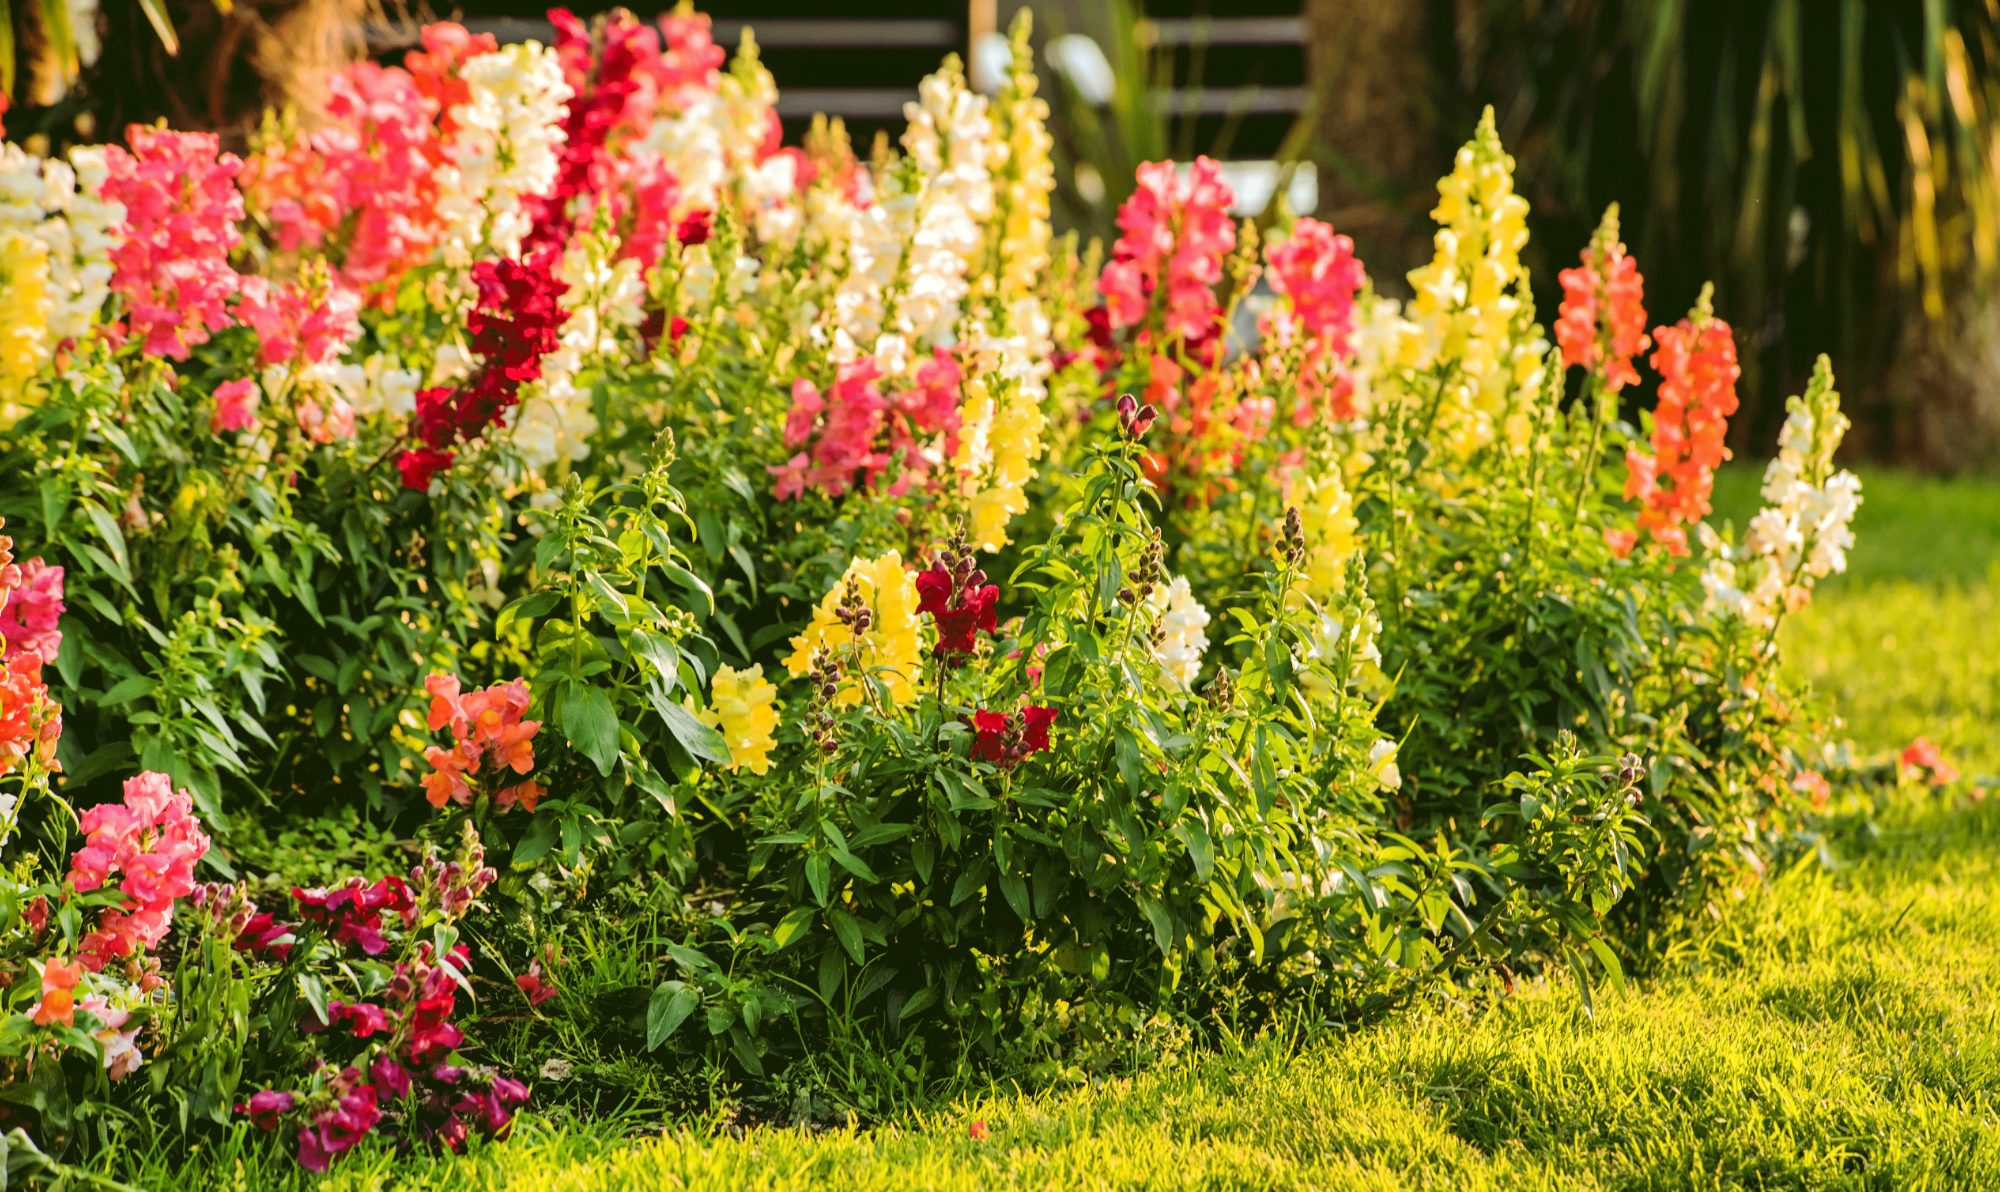 Roses In Garden: Here's How To Grow Your Own Bouquet With A Cut Flower